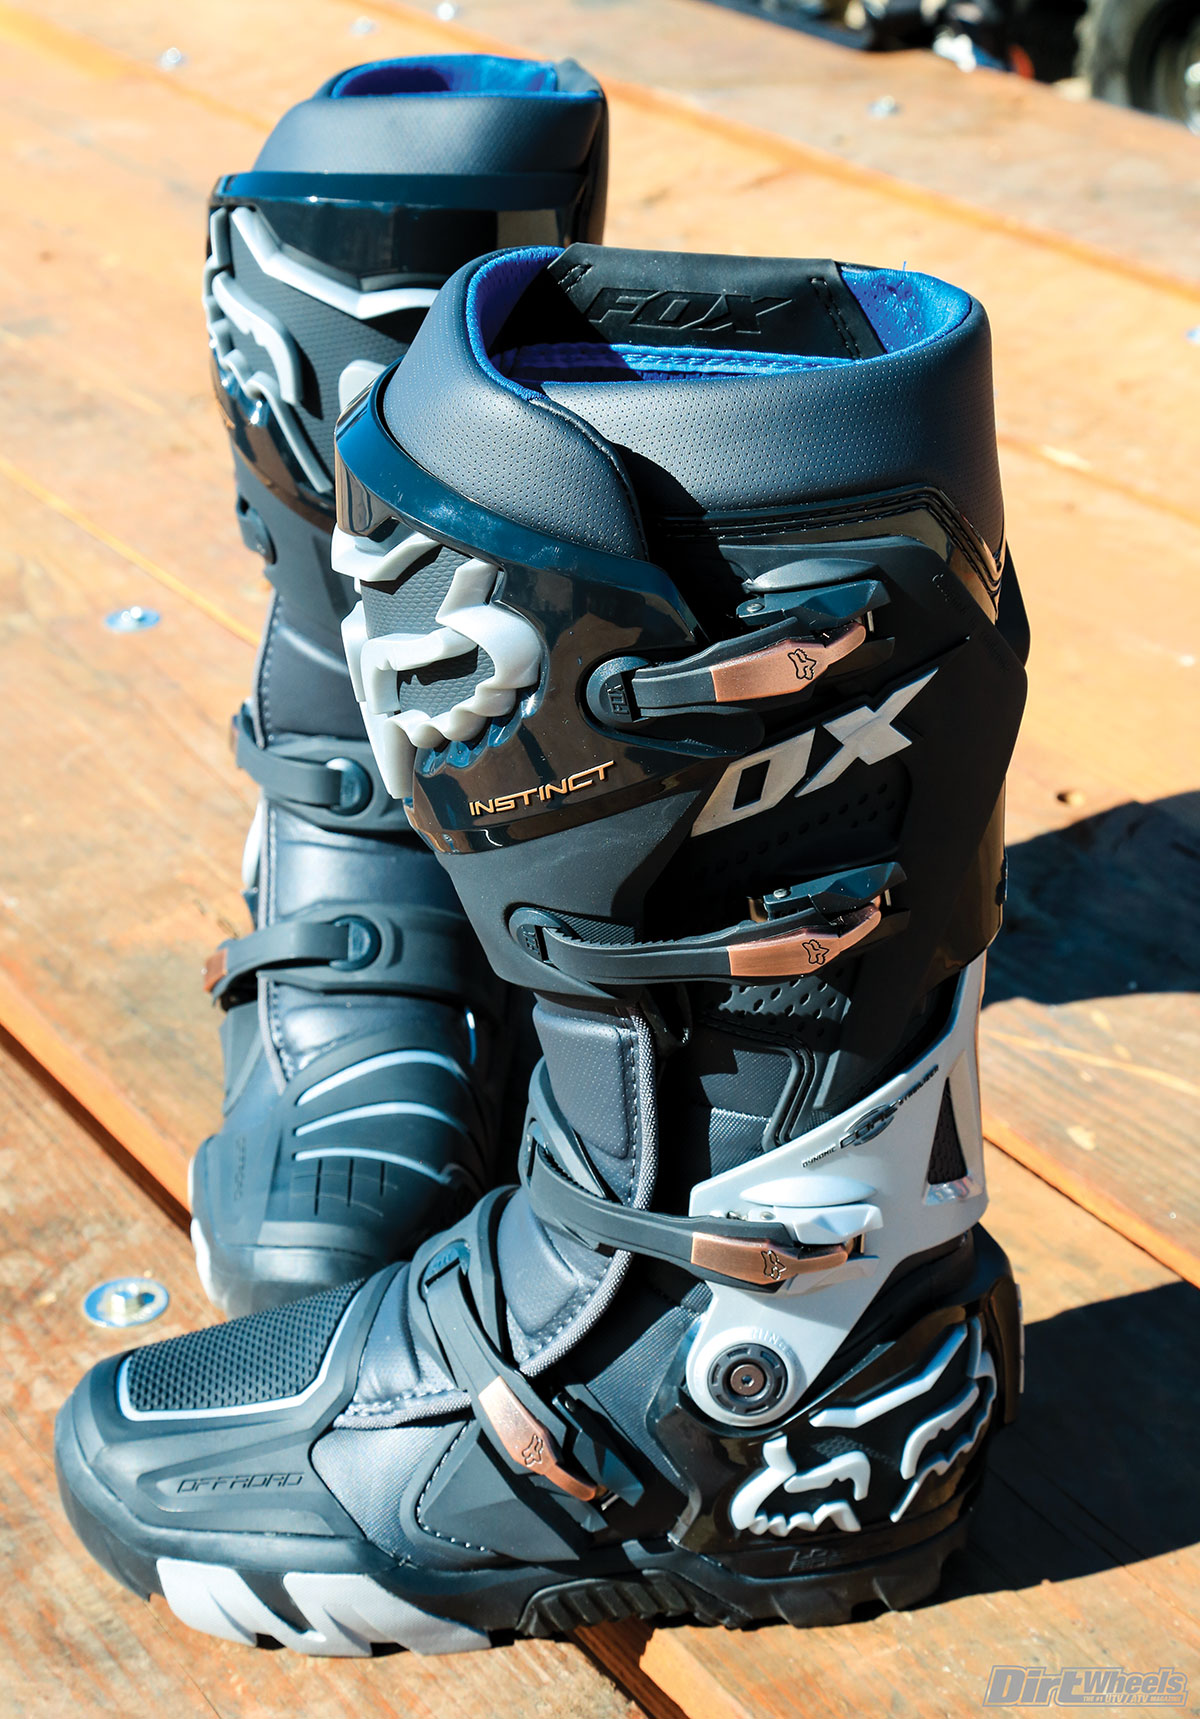 The Fox Instinct Offroad boots need some break-in time, but after that they are comfortable and very durable with a great look to them. The buckle system is easy to use.